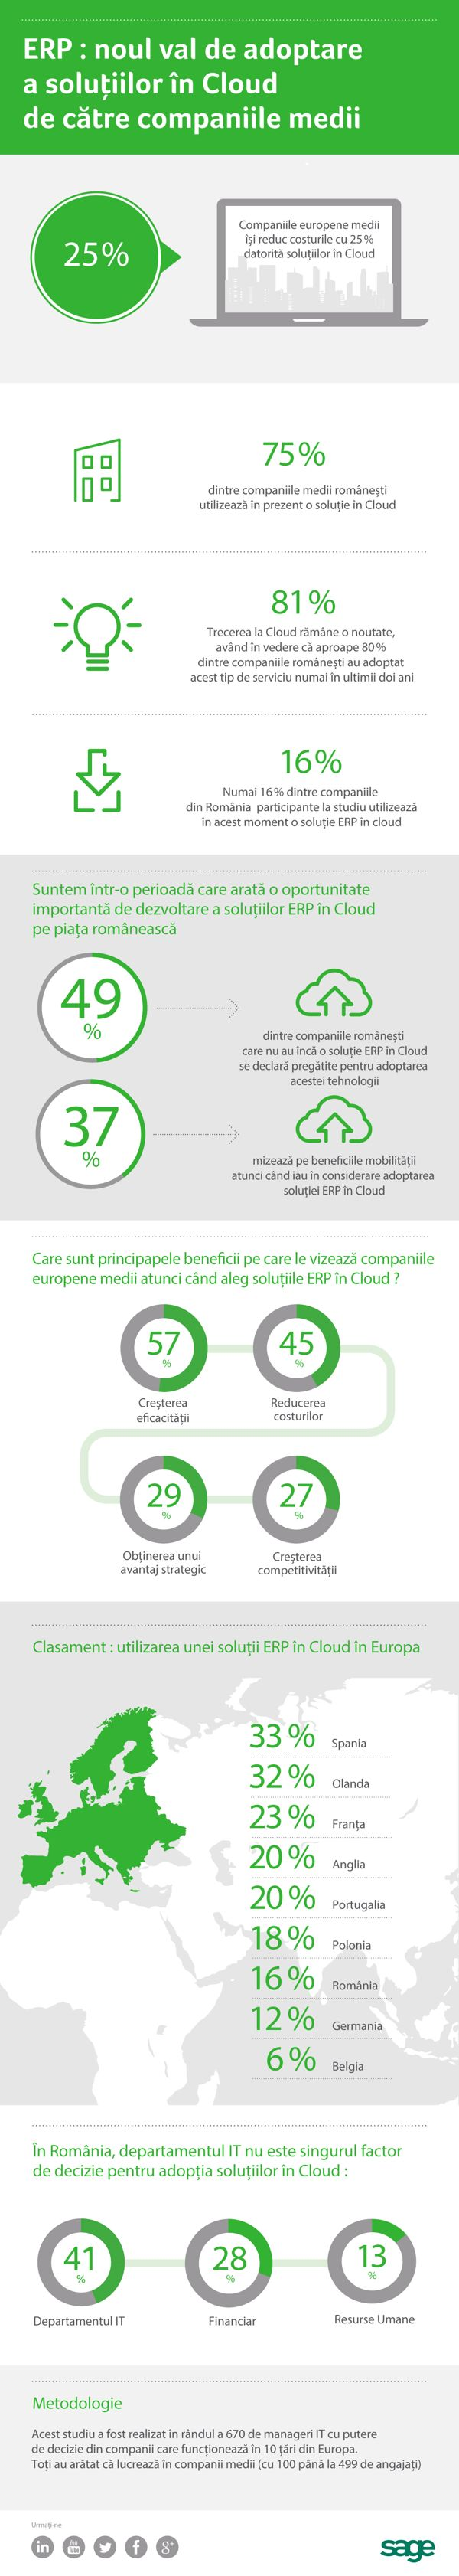 Infografic - Adoptarea solutiilor in Cloud